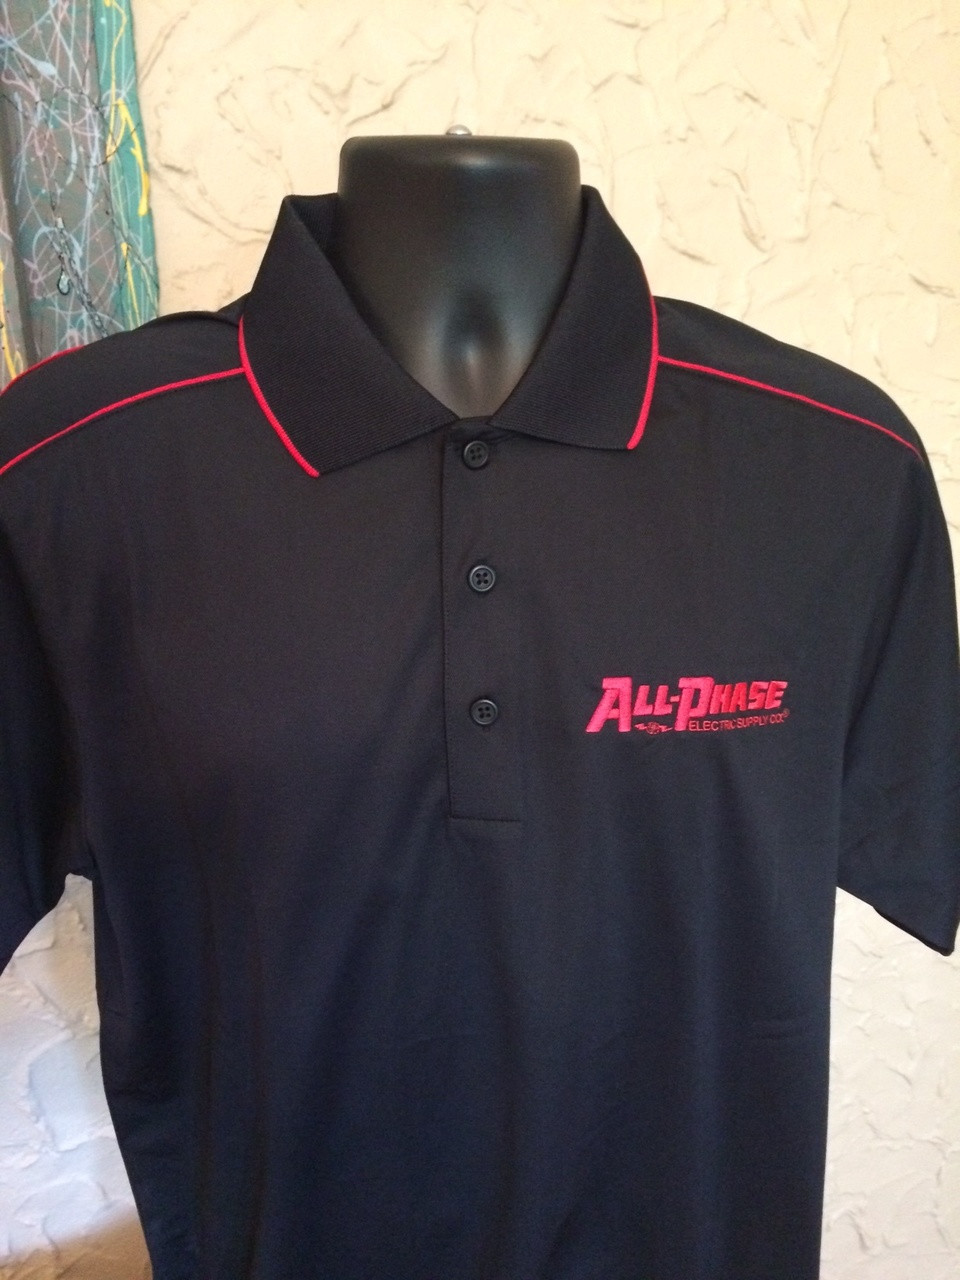 Men S All Phase Sport Tek Piped Polo Shirt Ced Dba Product Portal Check out our 60s polo shirt selection for the very best in unique or custom, handmade pieces from our clothing shops. ced dba s product portal